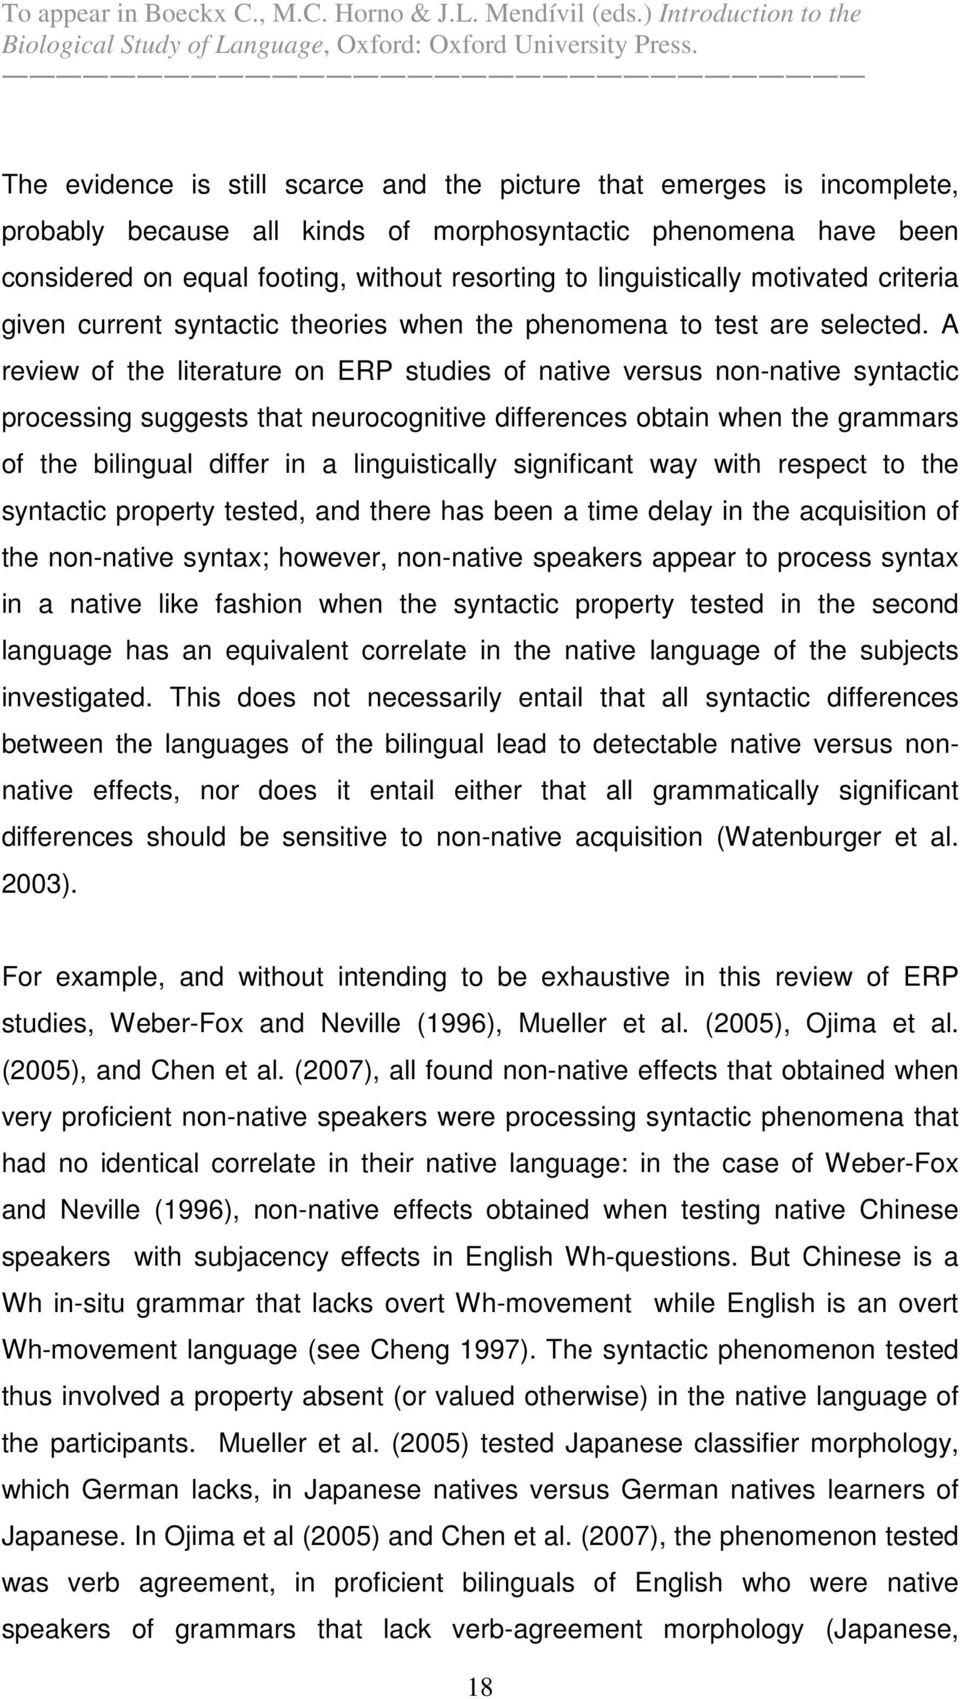 A review of the literature on ERP studies of native versus non-native syntactic processing suggests that neurocognitive differences obtain when the grammars of the bilingual differ in a